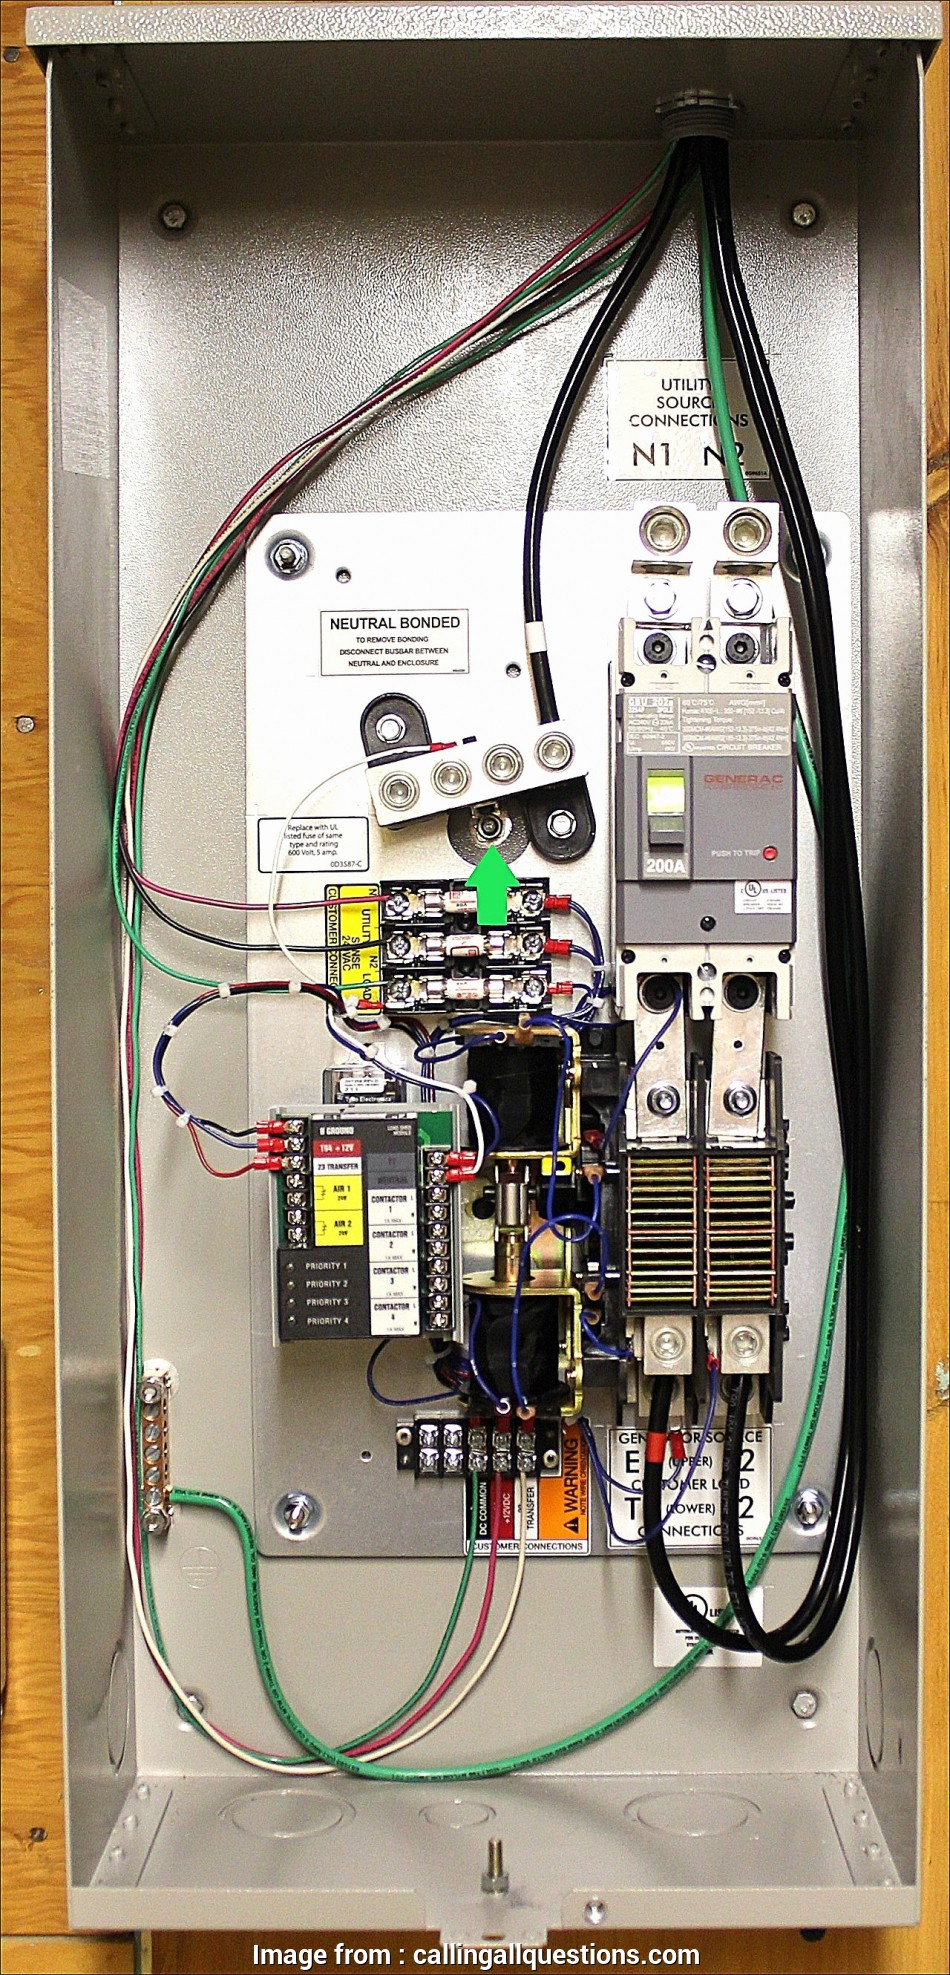 6a62 10 Circuit Transfer Switch Generac Wiring Diagram Wiring Resources